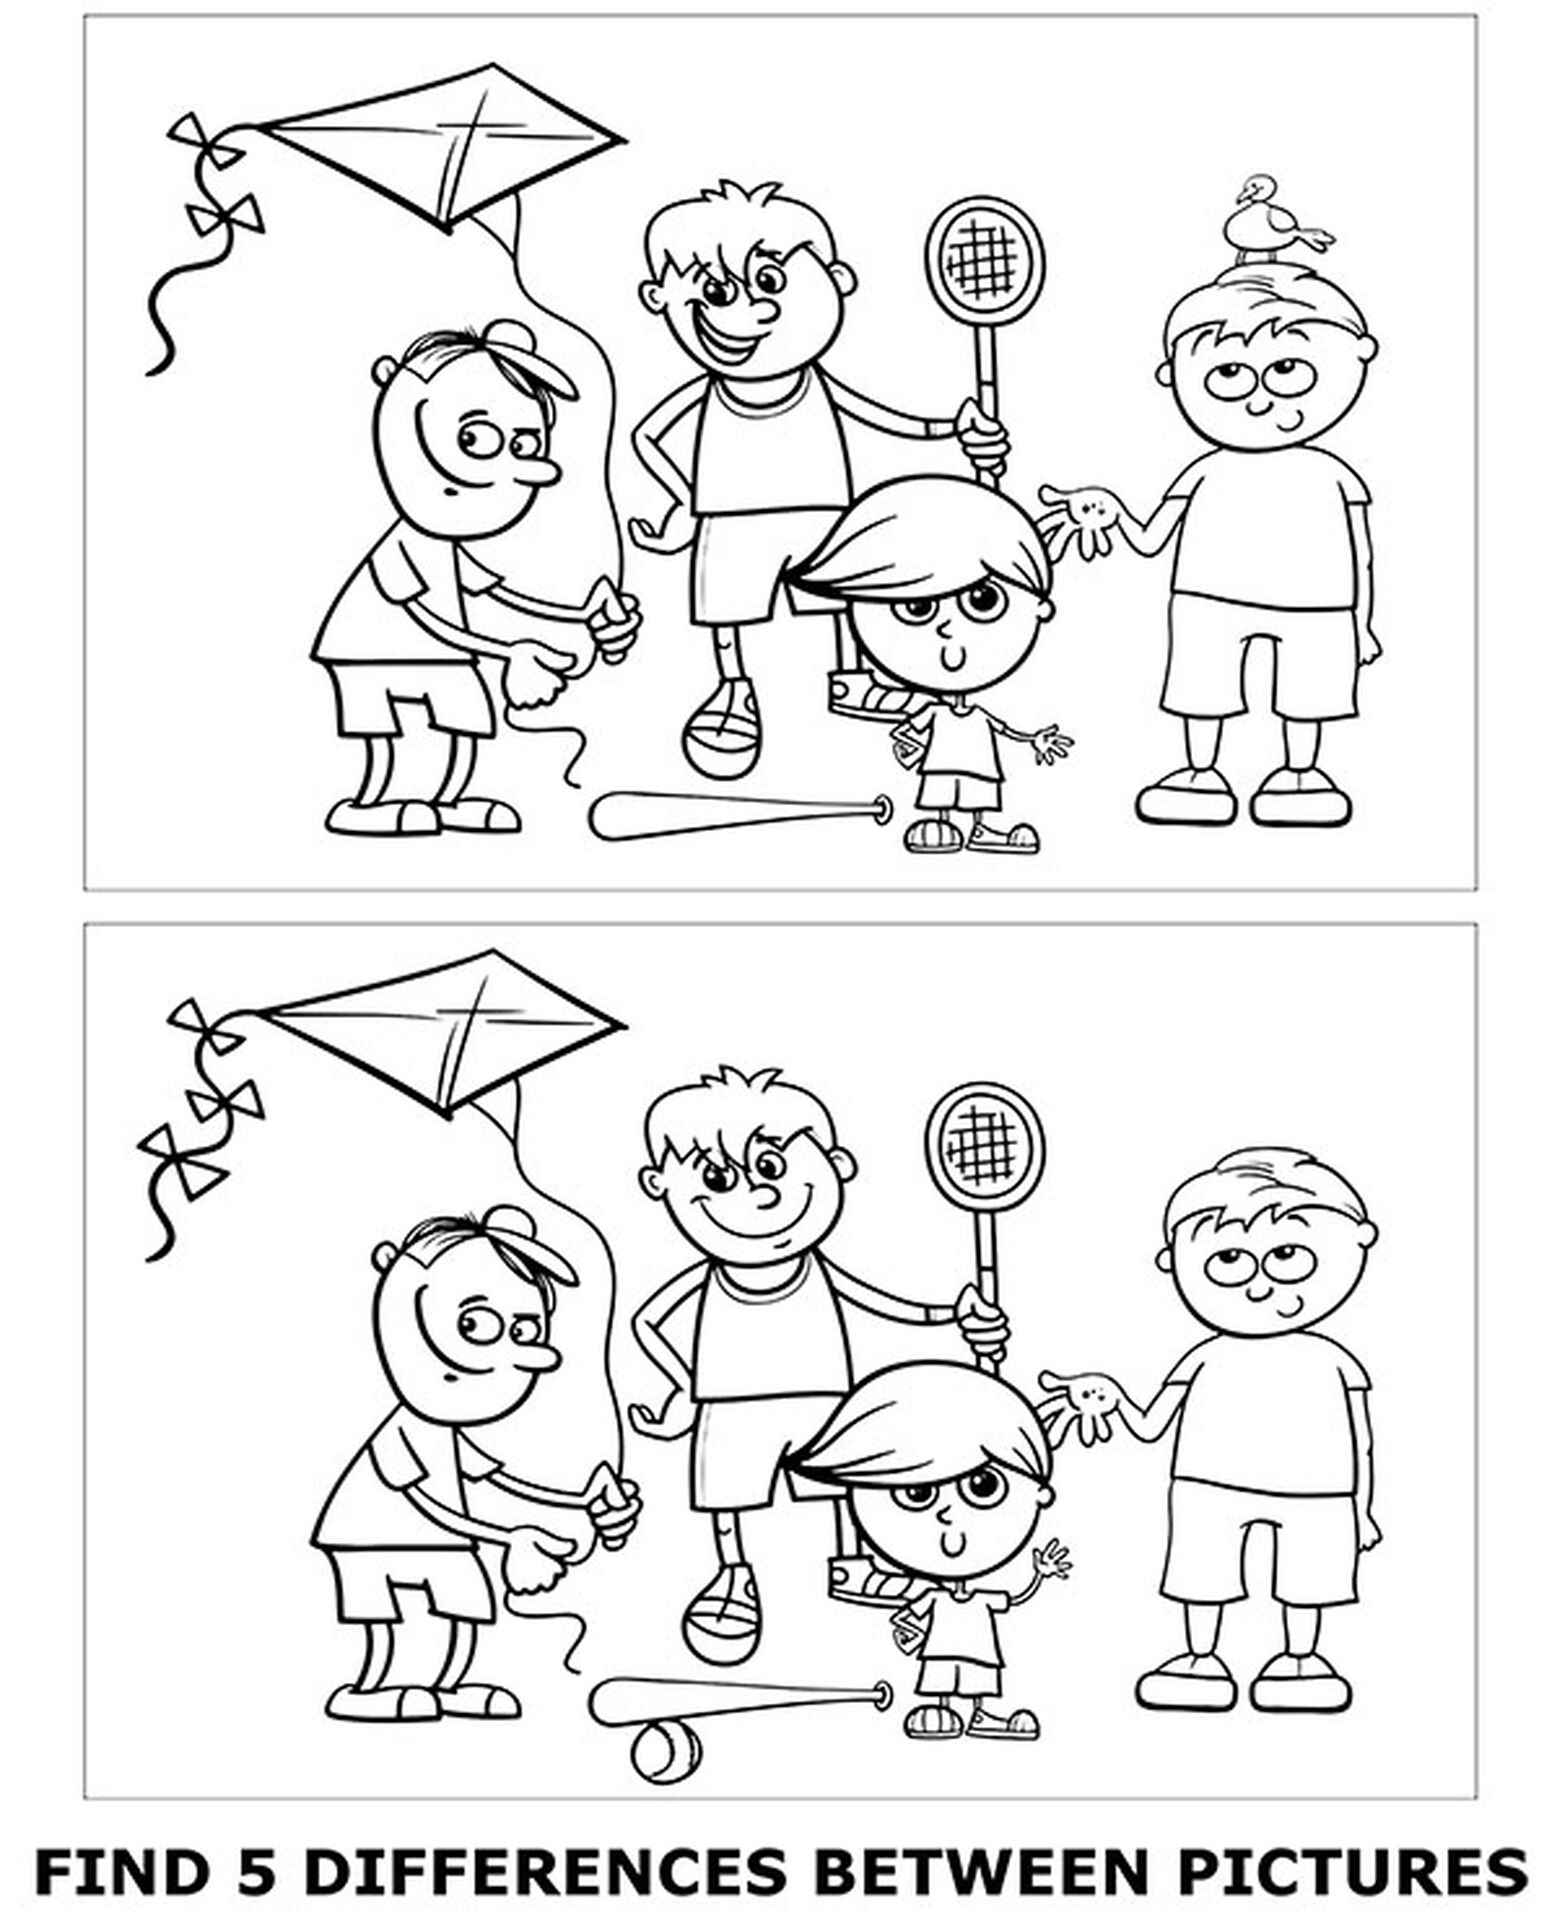 Spot 5 Differences Coloring Page for Kids